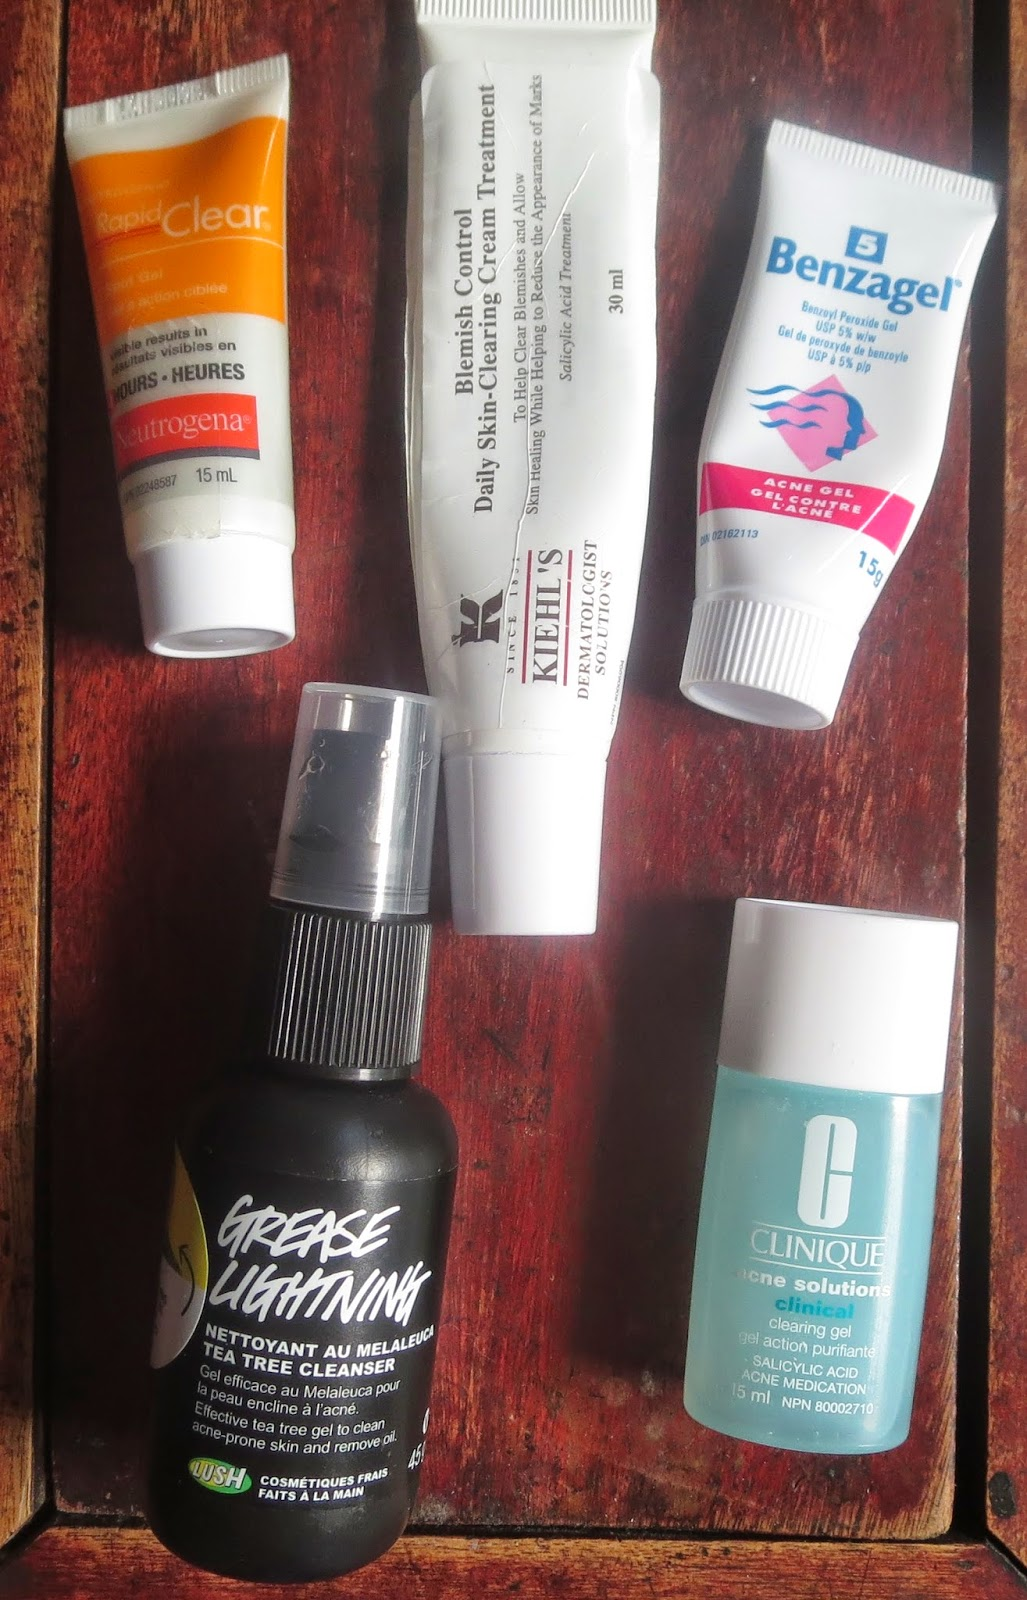 a picture of Spot Treatments ; Clinique, Grease Lightning, Kiehl's, Benzgel, Neutrogena